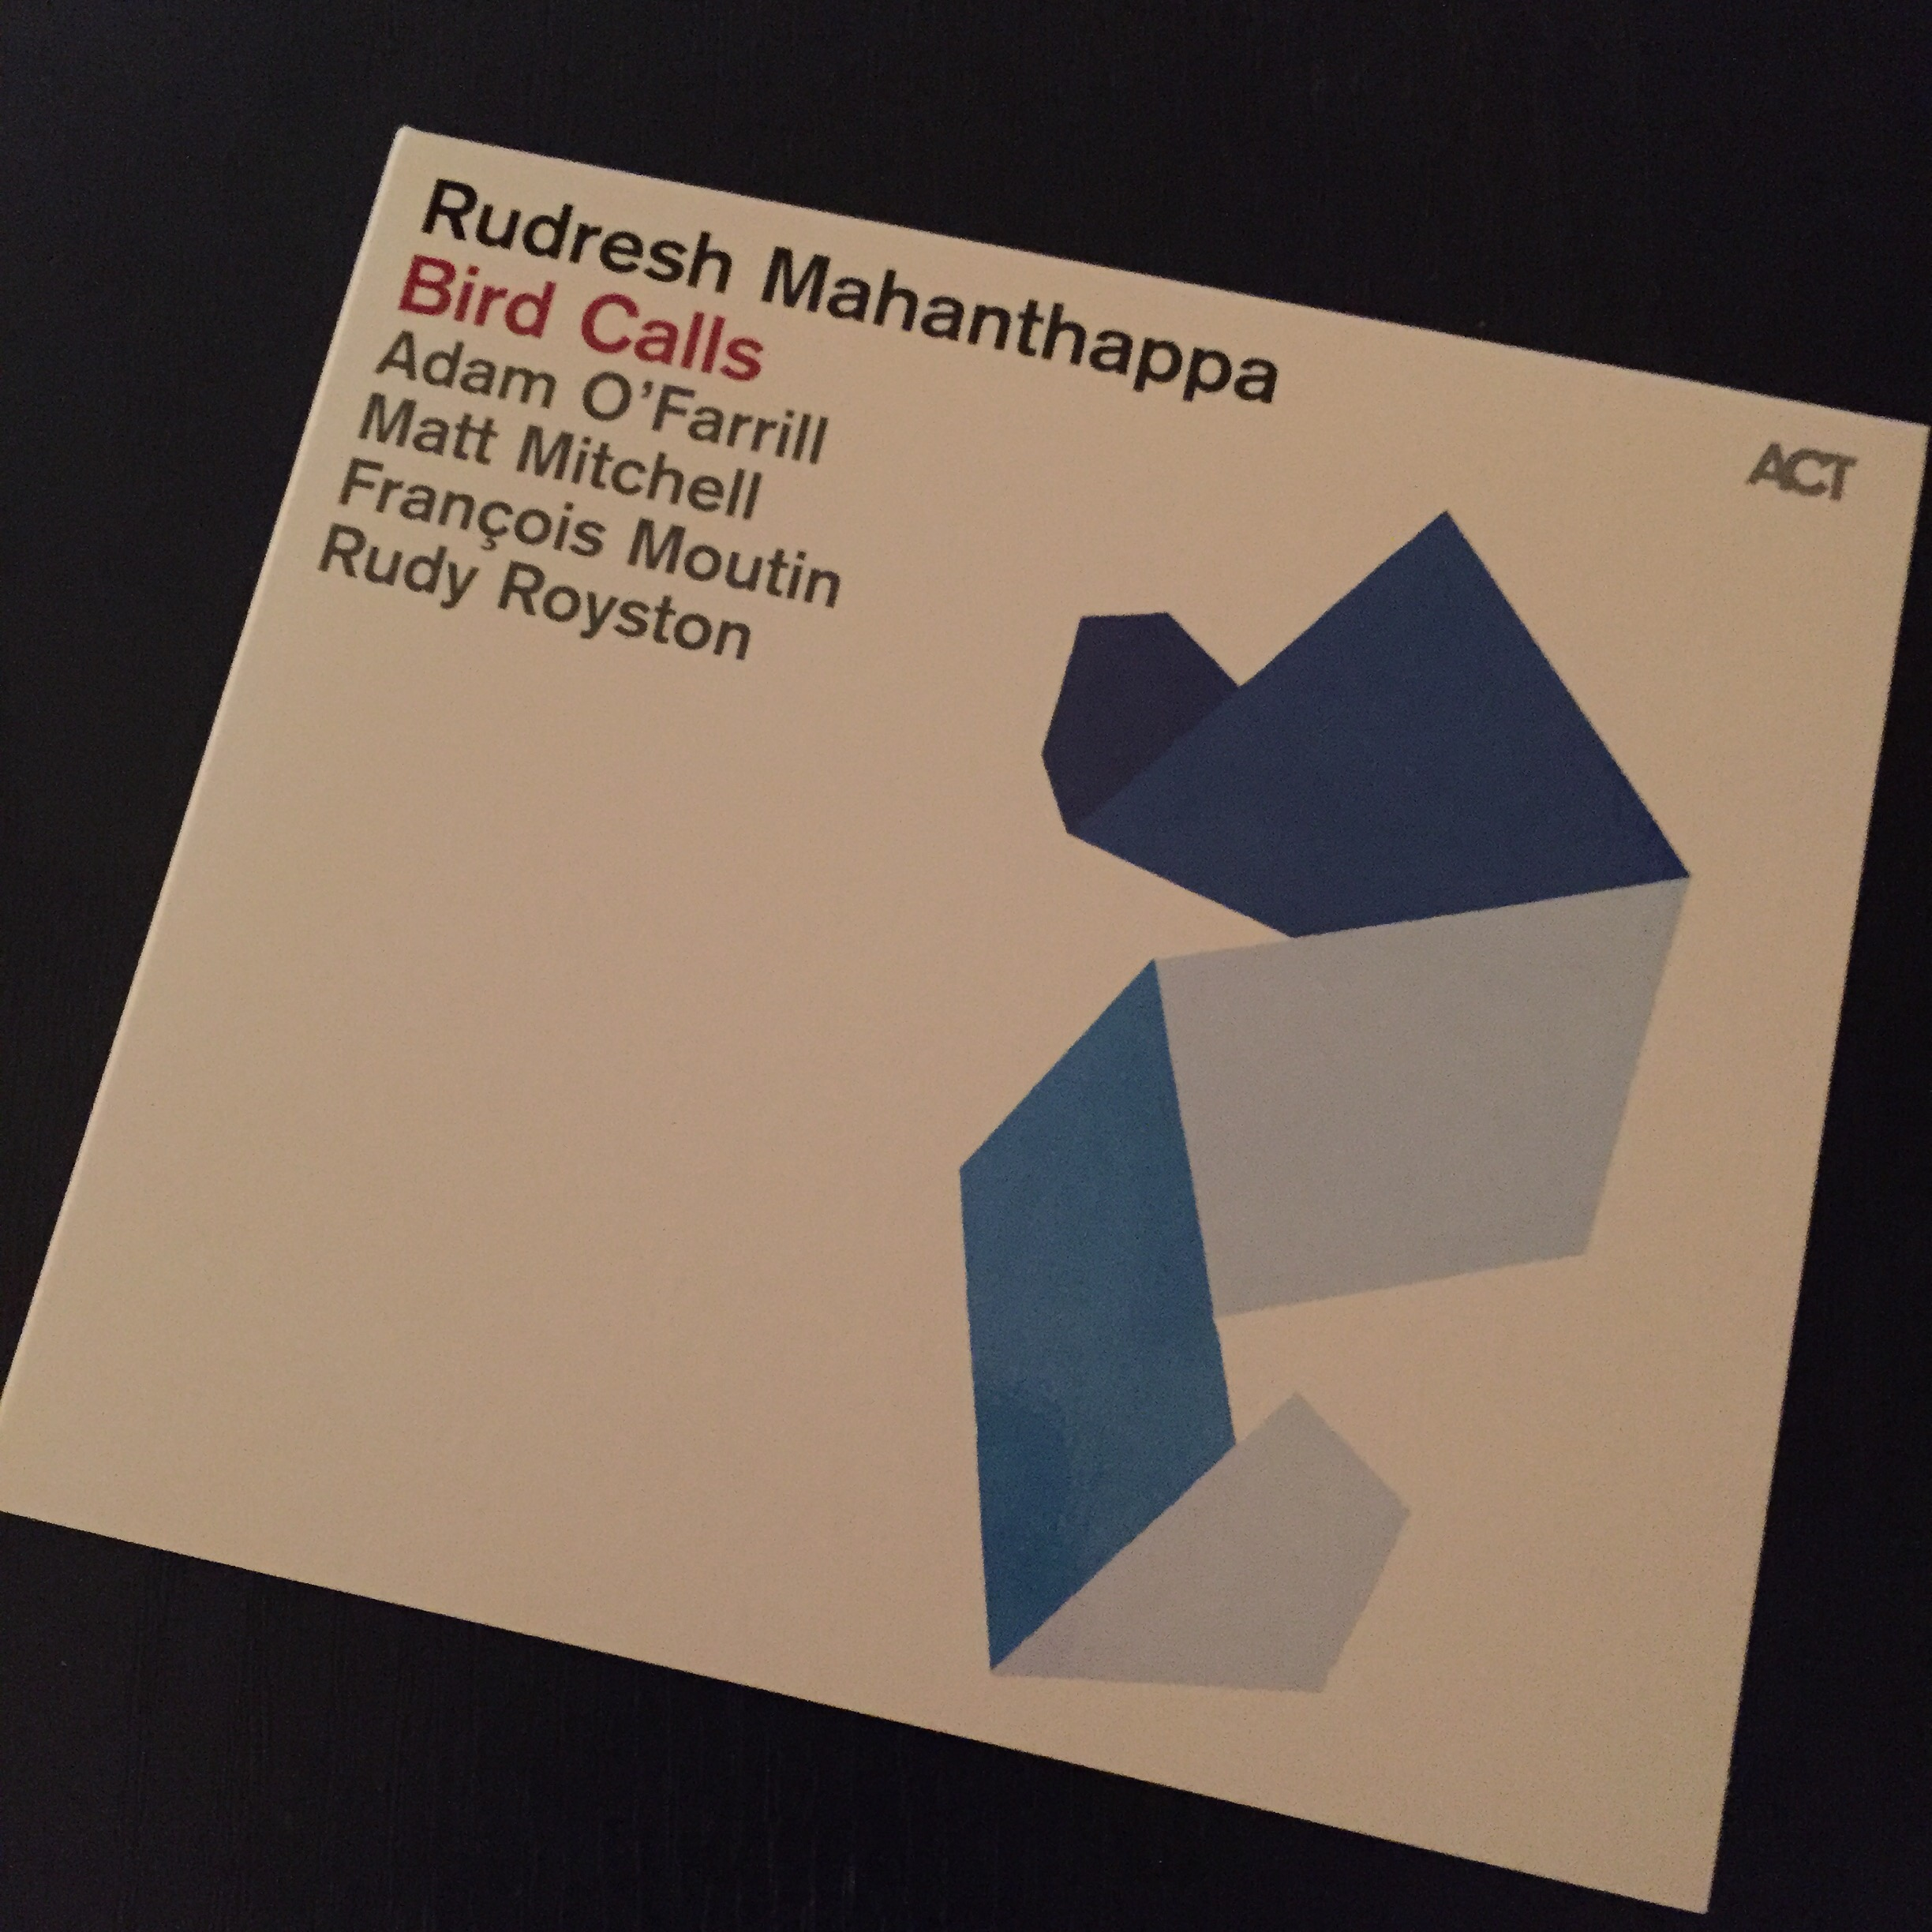 Bird Calls, by Rudresh Mahanthappa